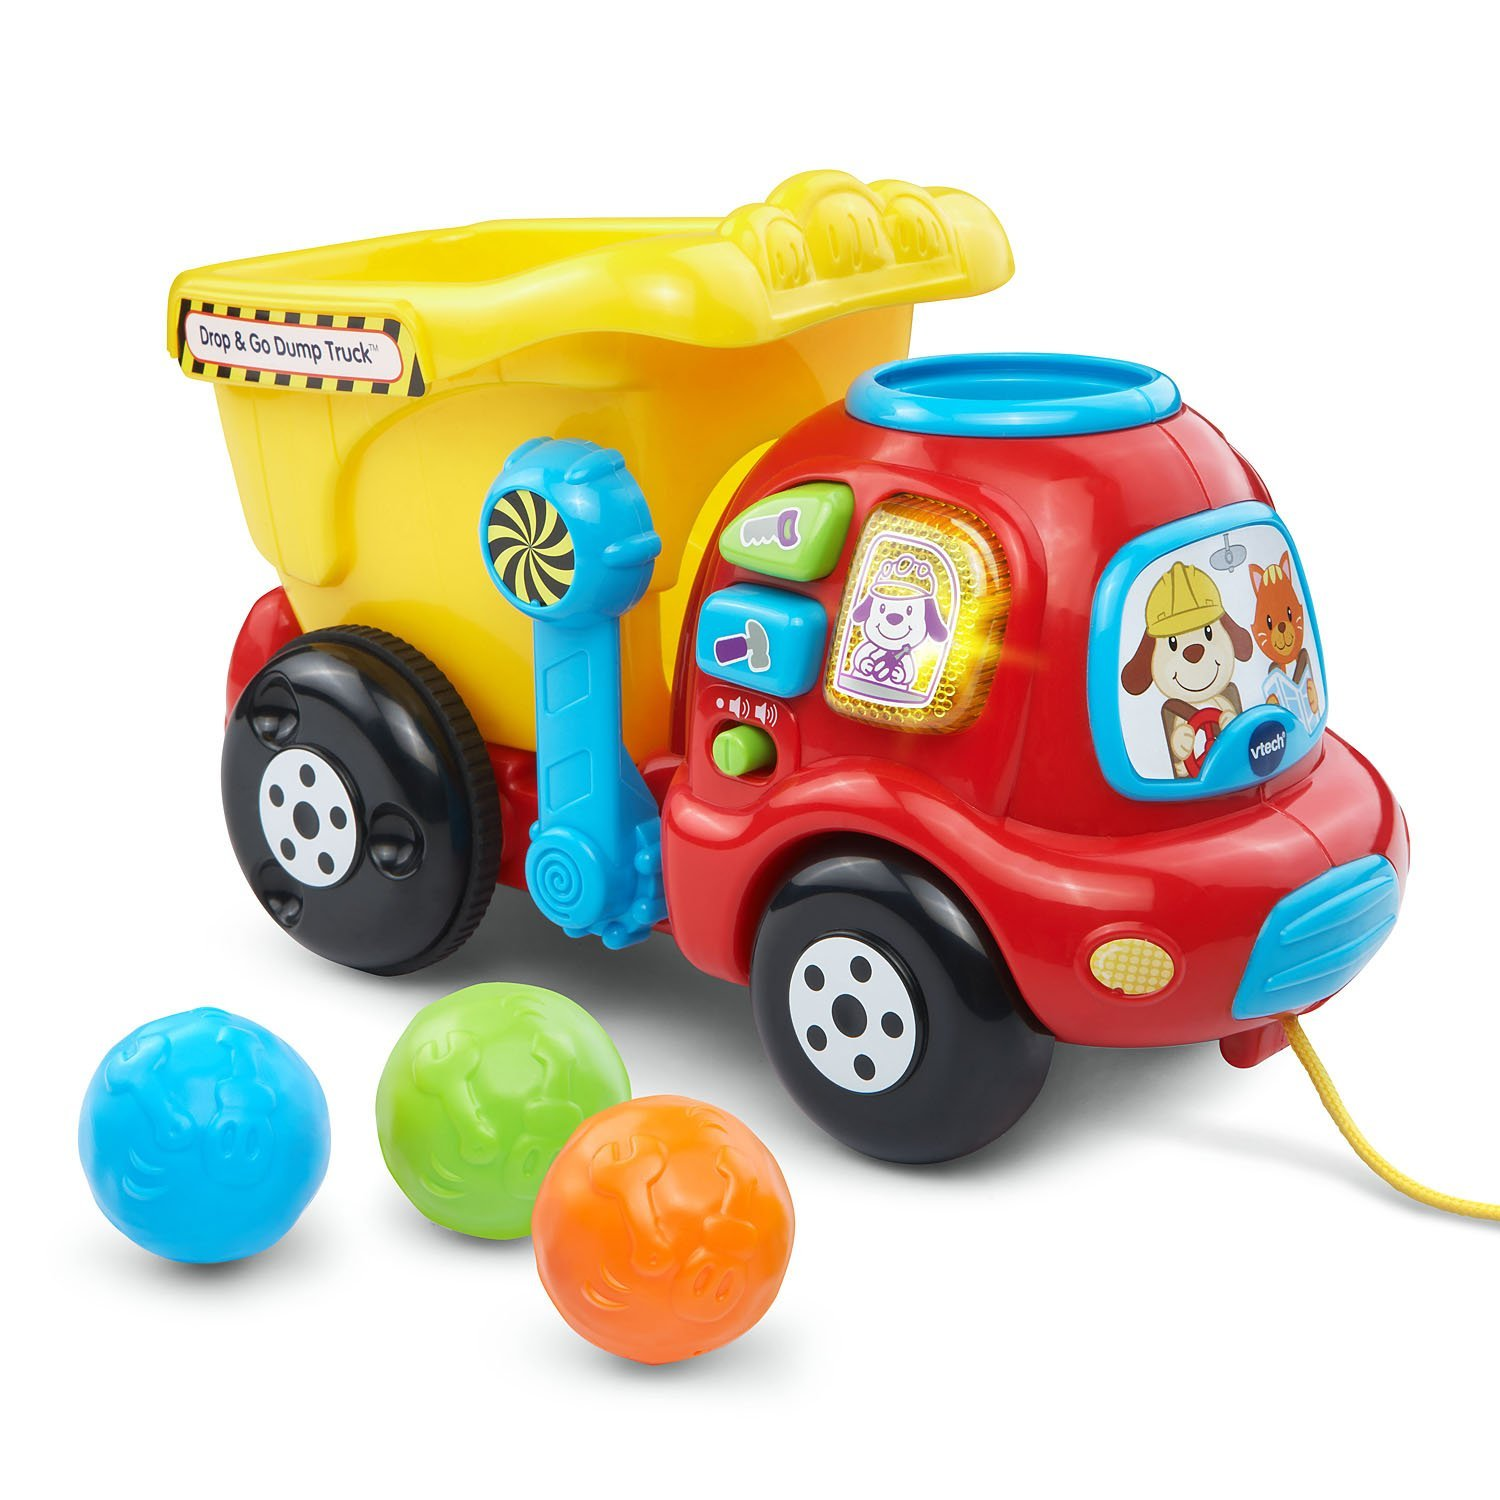 Drop and Go Dump Truck, Brand Best Quality Warranty,From U.S, Brand VTech by